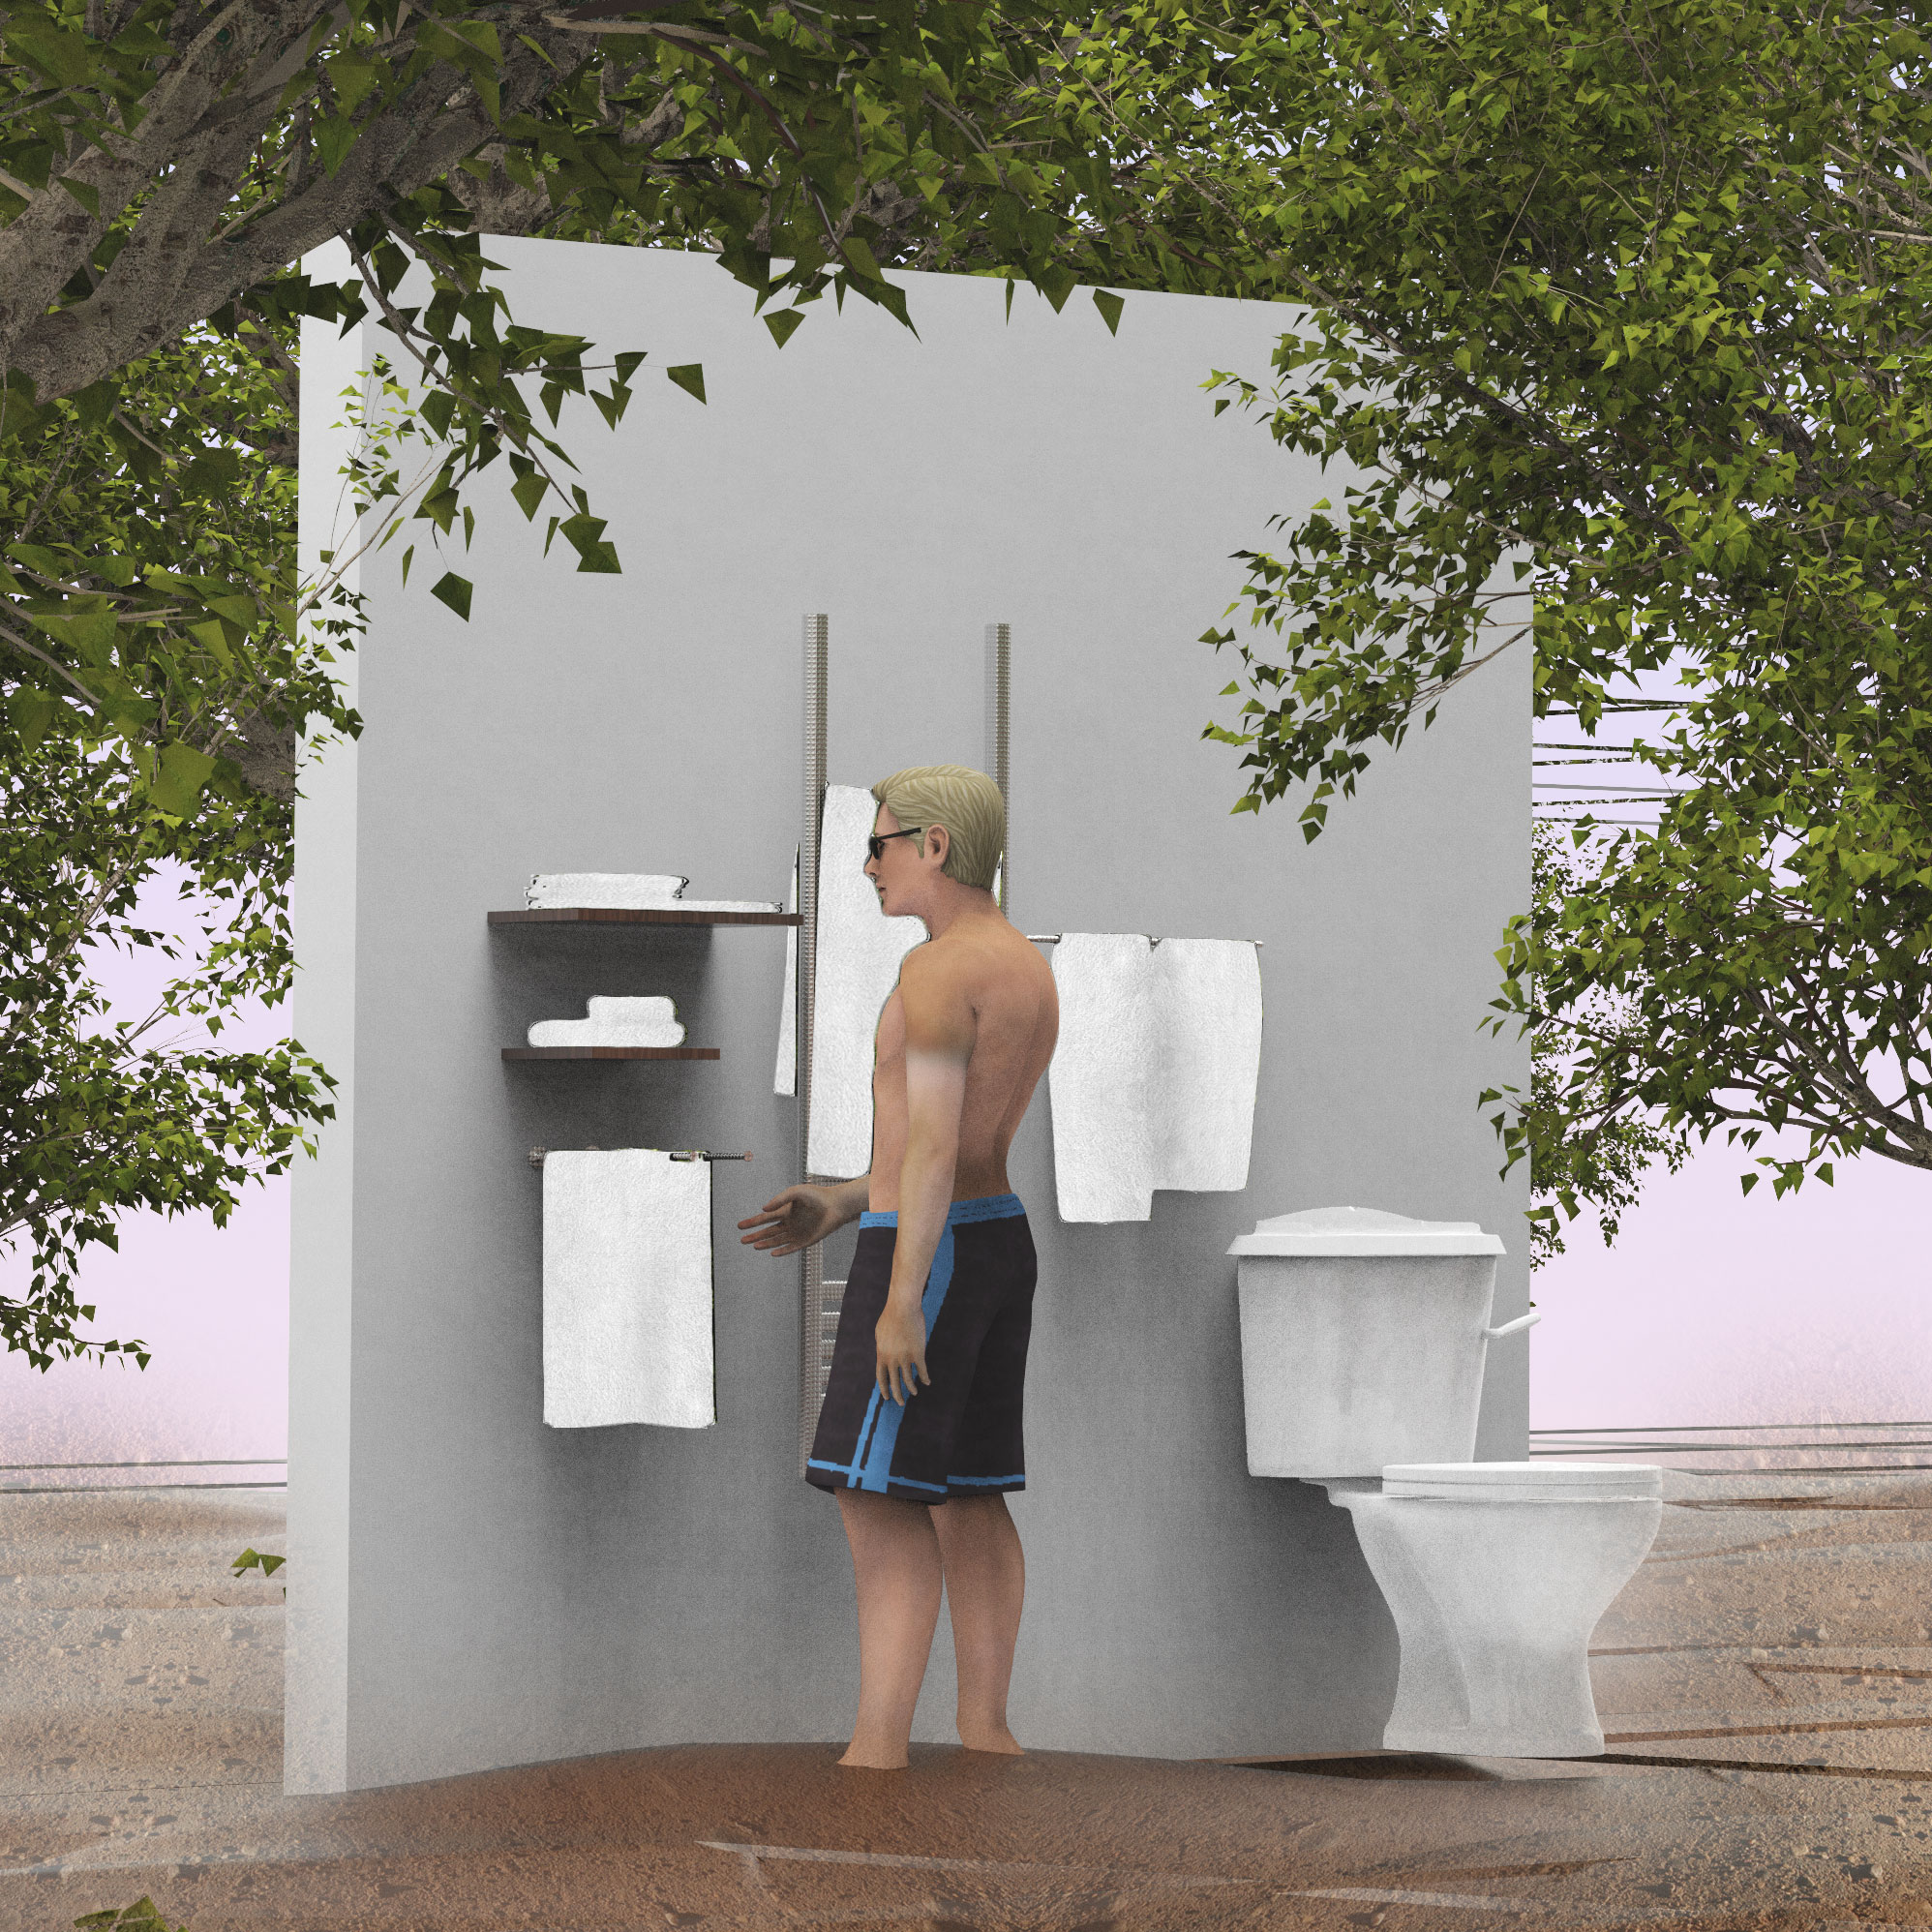 20170604_Toilet_in_Forest-SQ